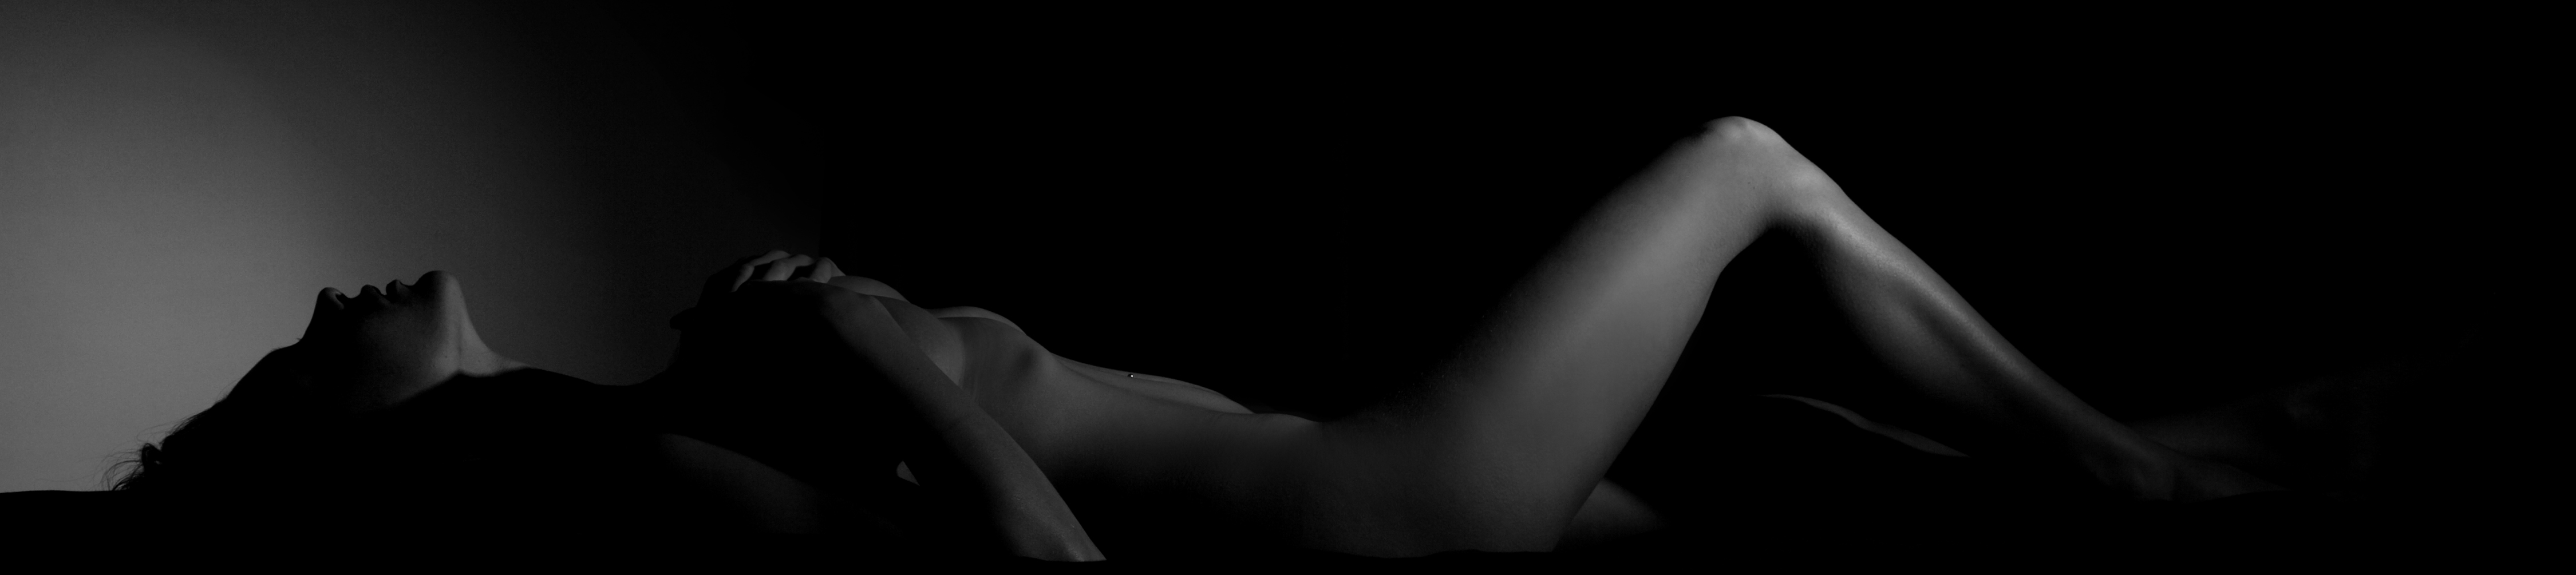 Alise Black Semi Nude Photography